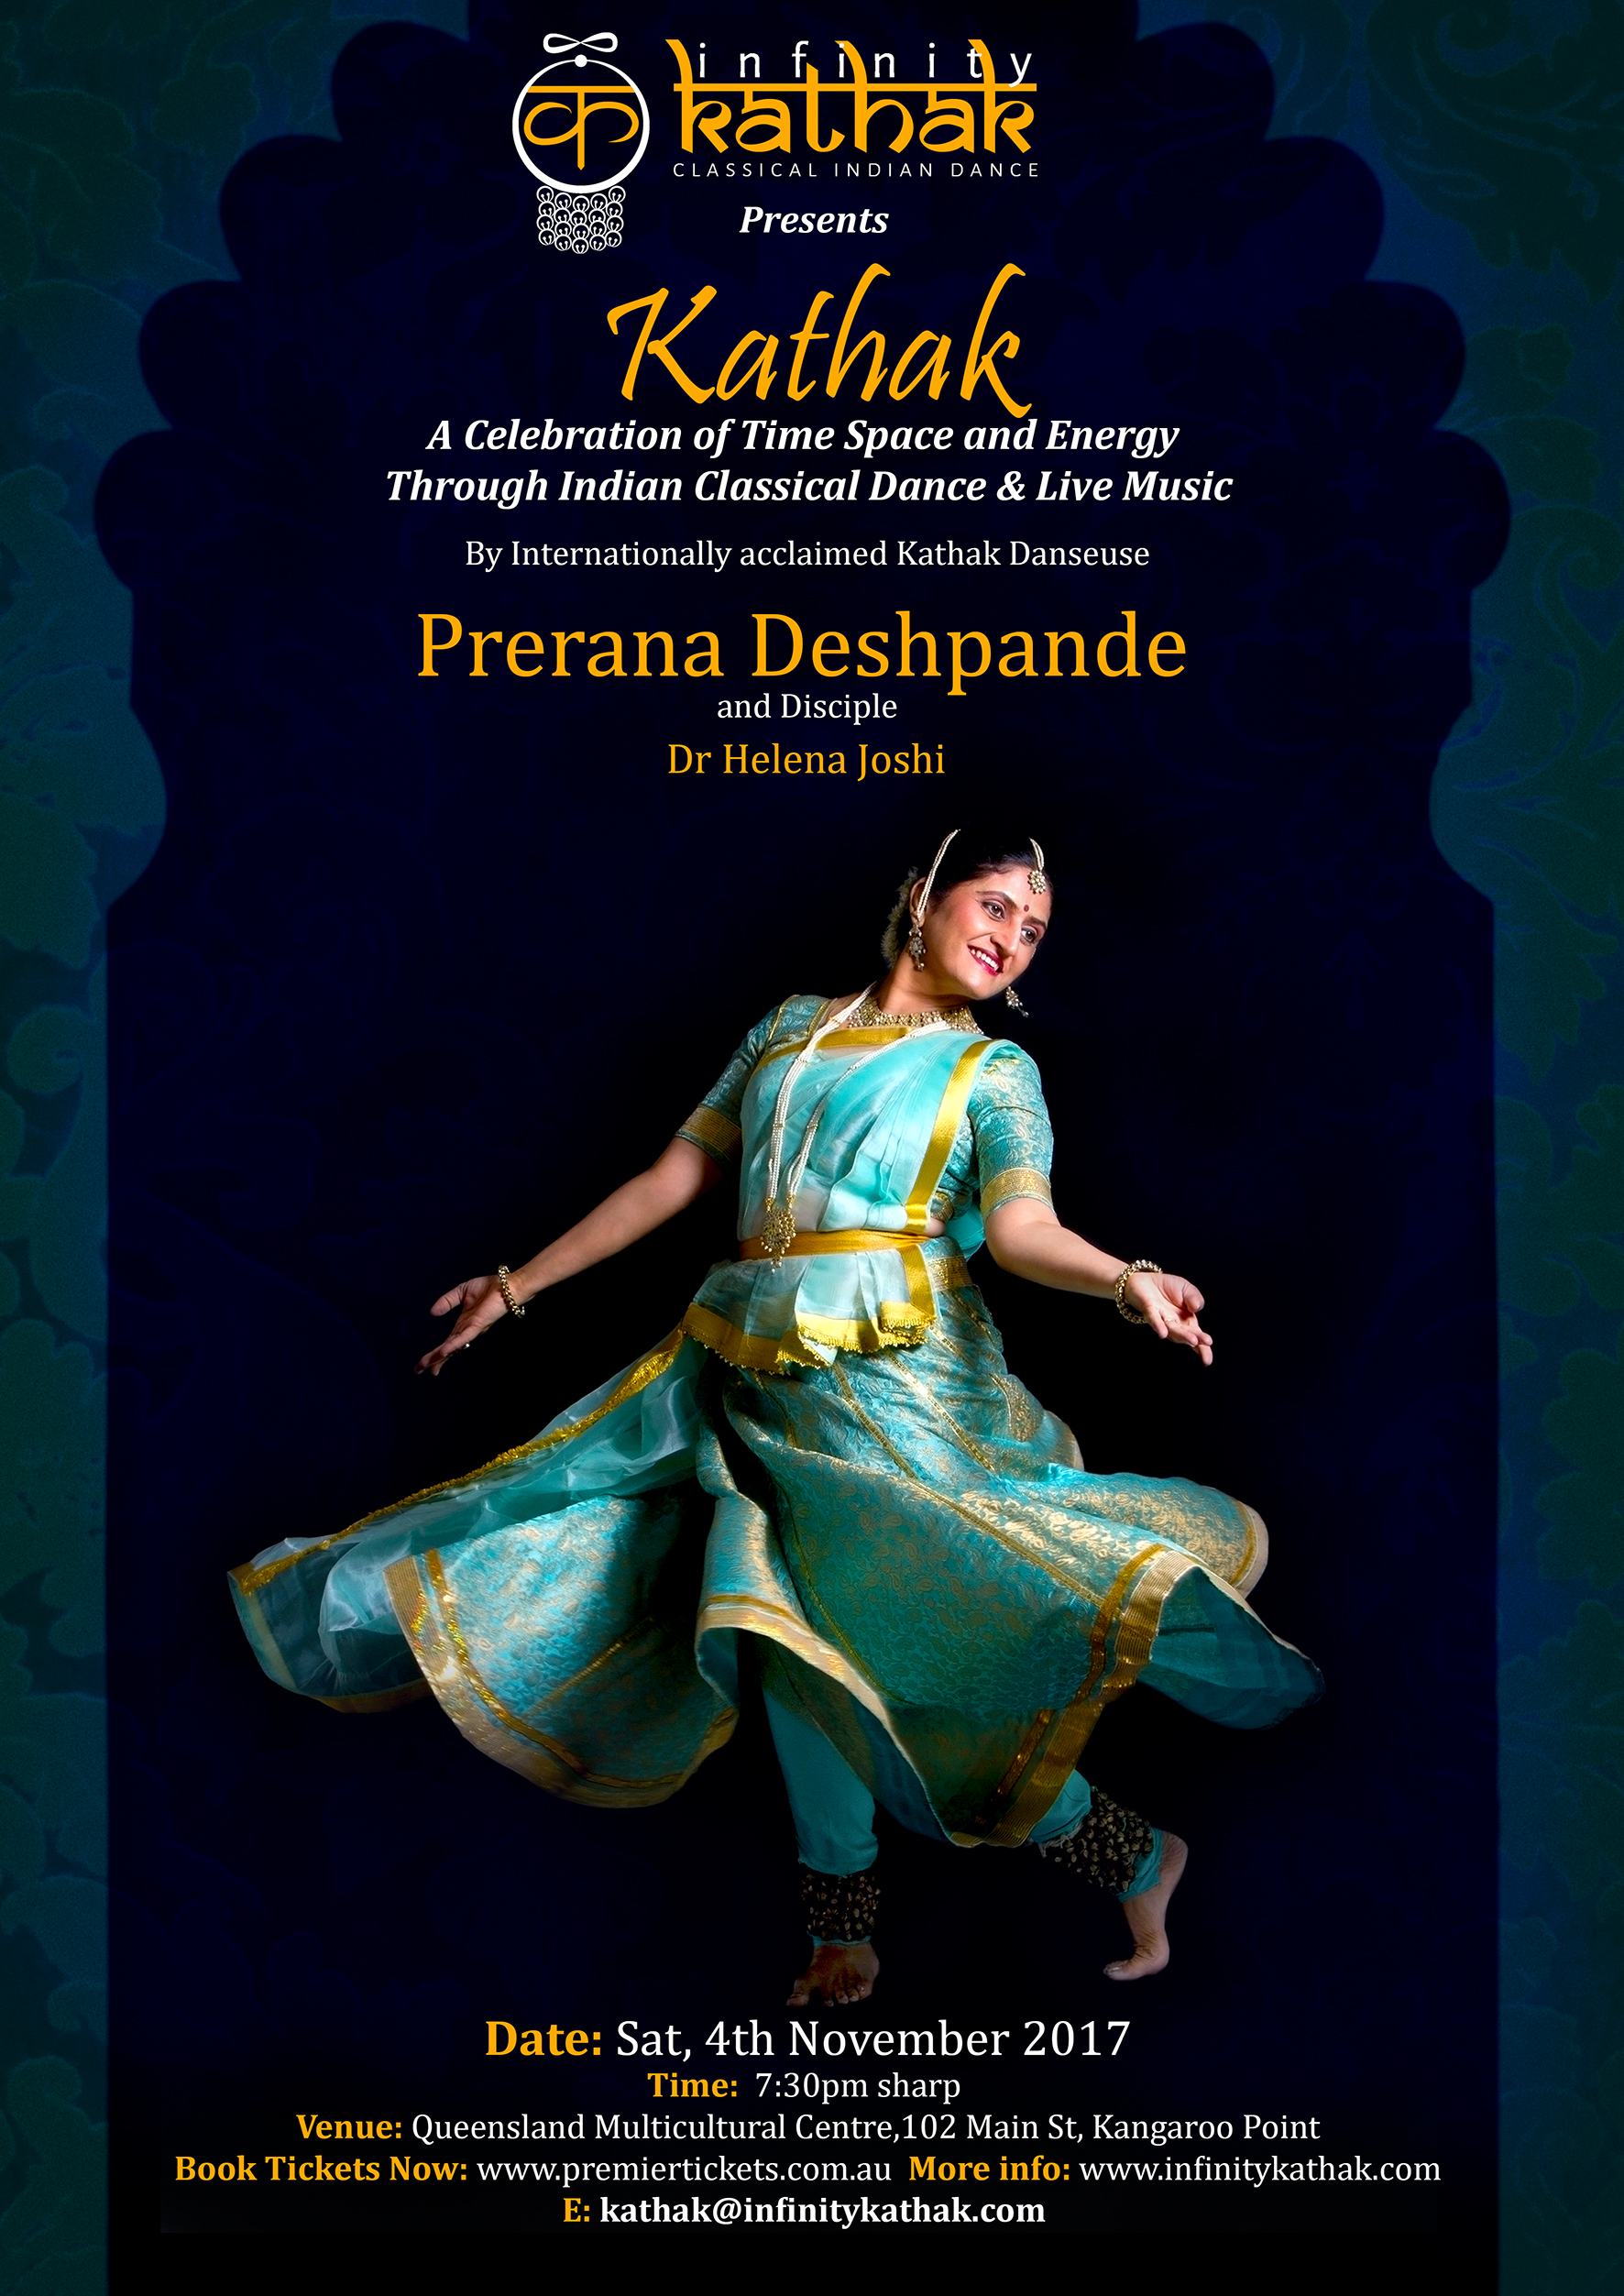 Kathak – An Exploration of Time, Space and Energy